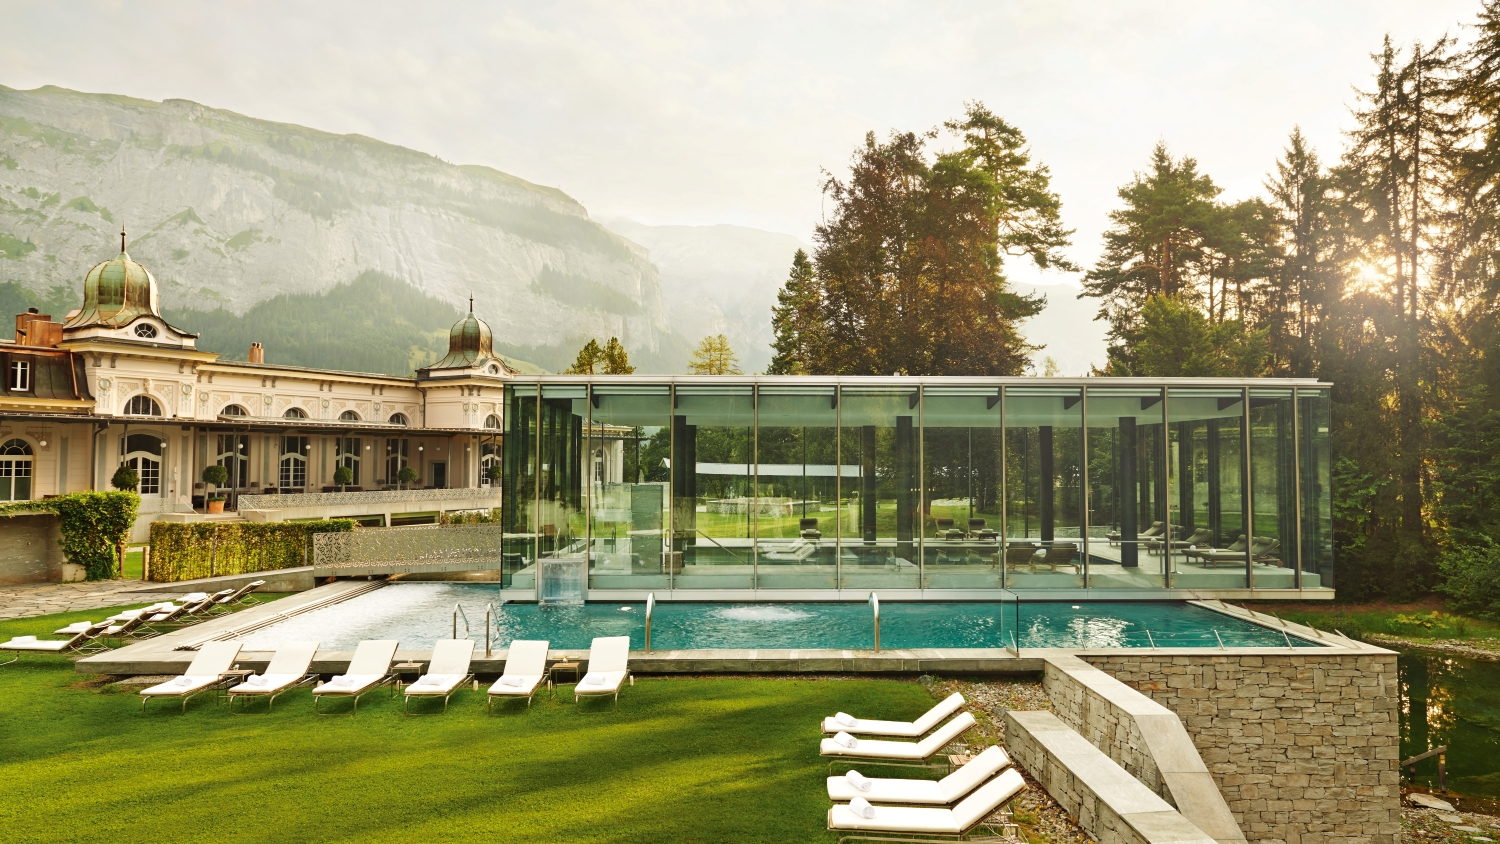 Waldhaus Flims Wellness Resort and Pool Area